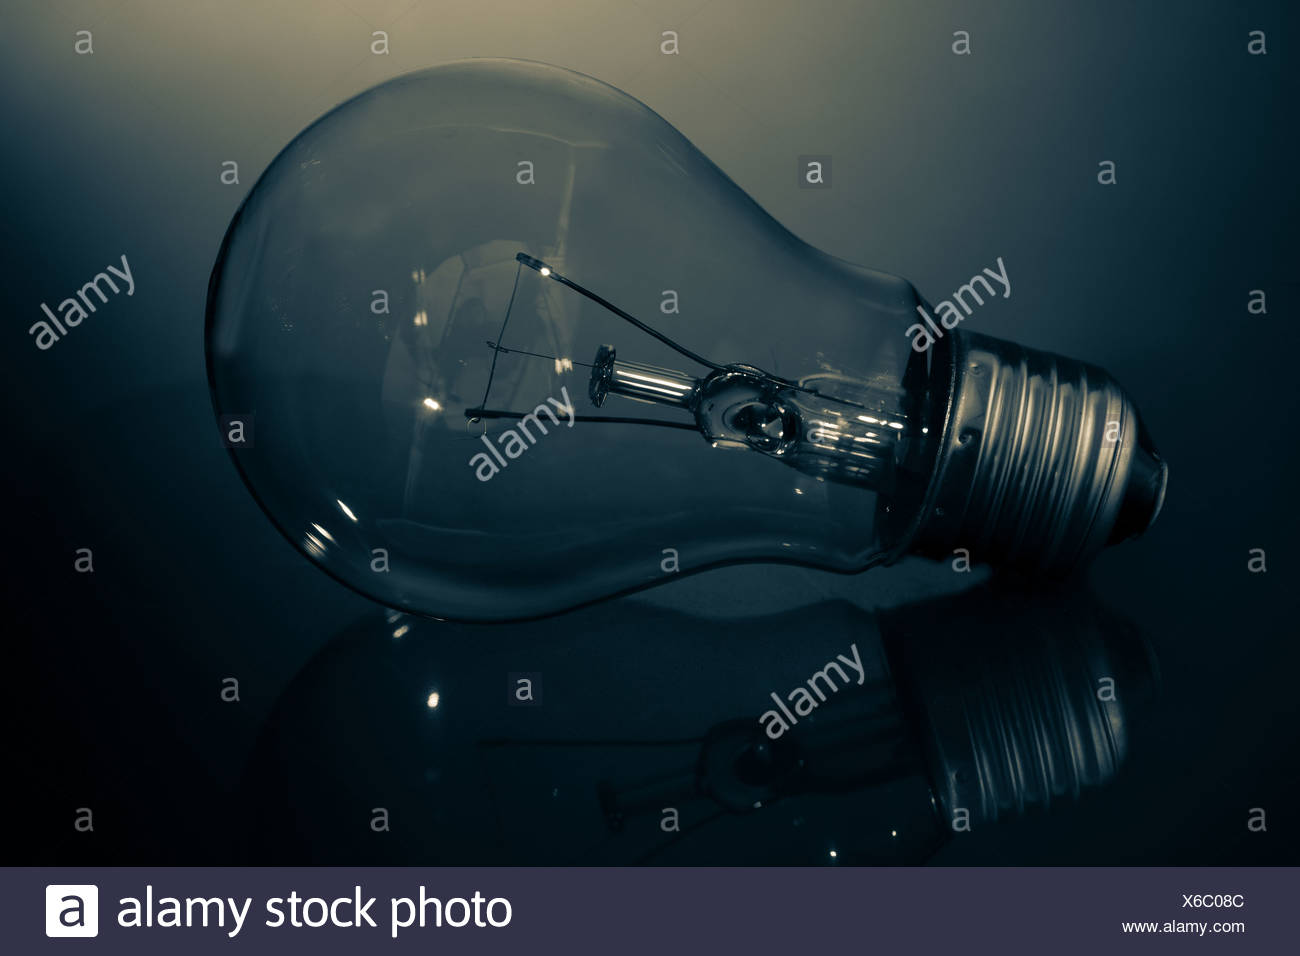 Clear light bulb lay on its side in darkness - Stock Image